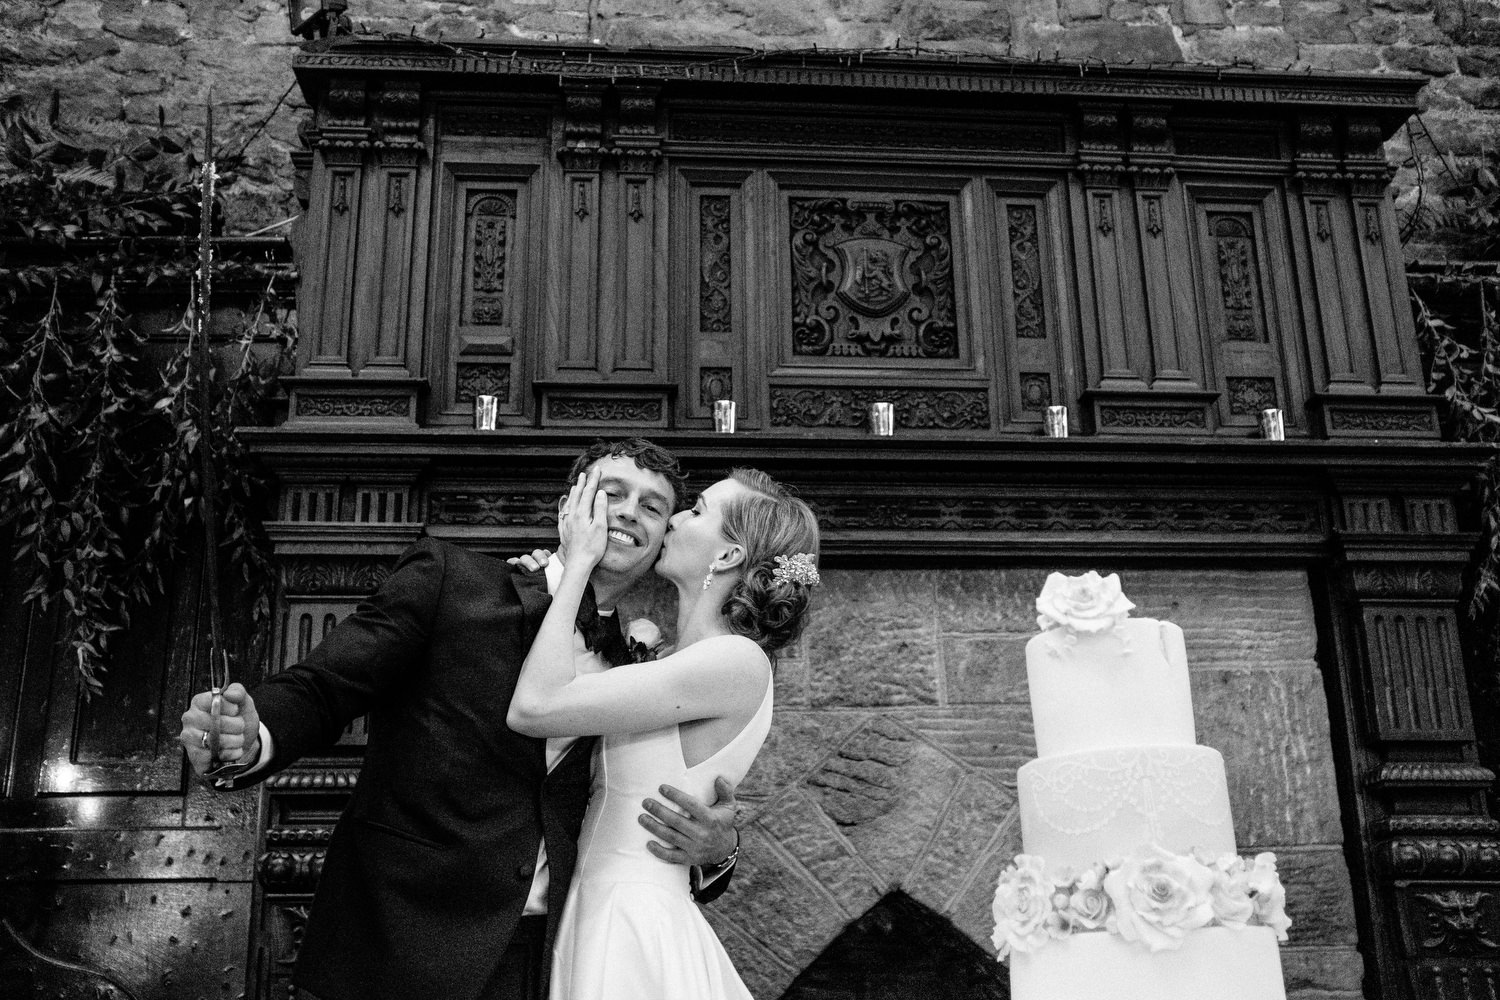 000000000000000000000191_bride_style_vintage_photography_david_mcclelland_ireland_castle_hollywood_kinnity_wedding_photographer_fujifilm